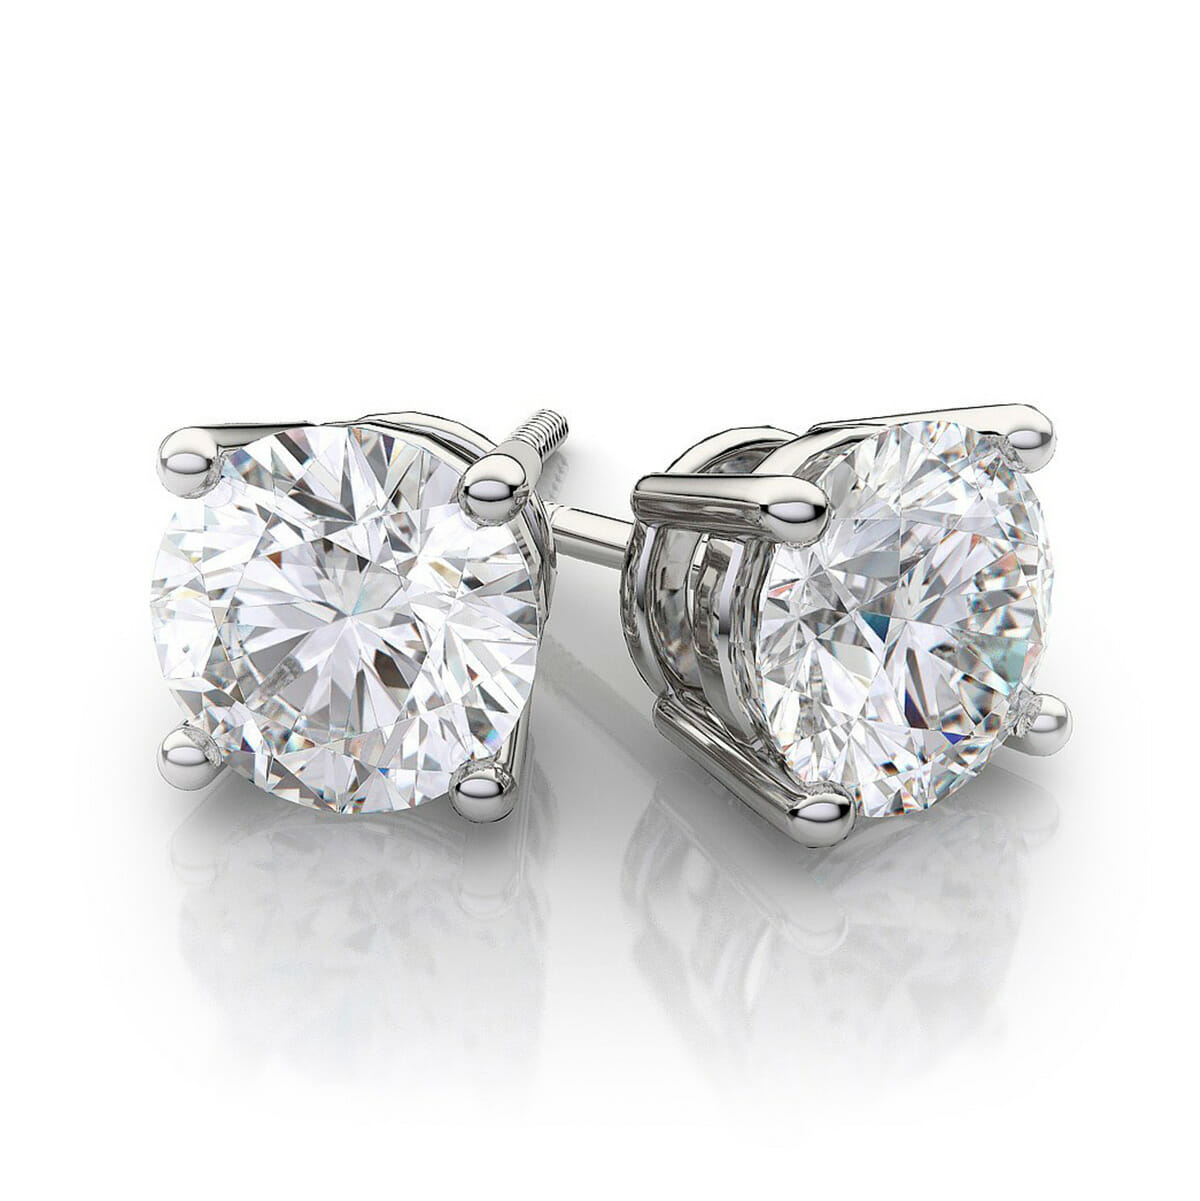 carats round diamond earrings forevermark products prong martini cut stud ideal